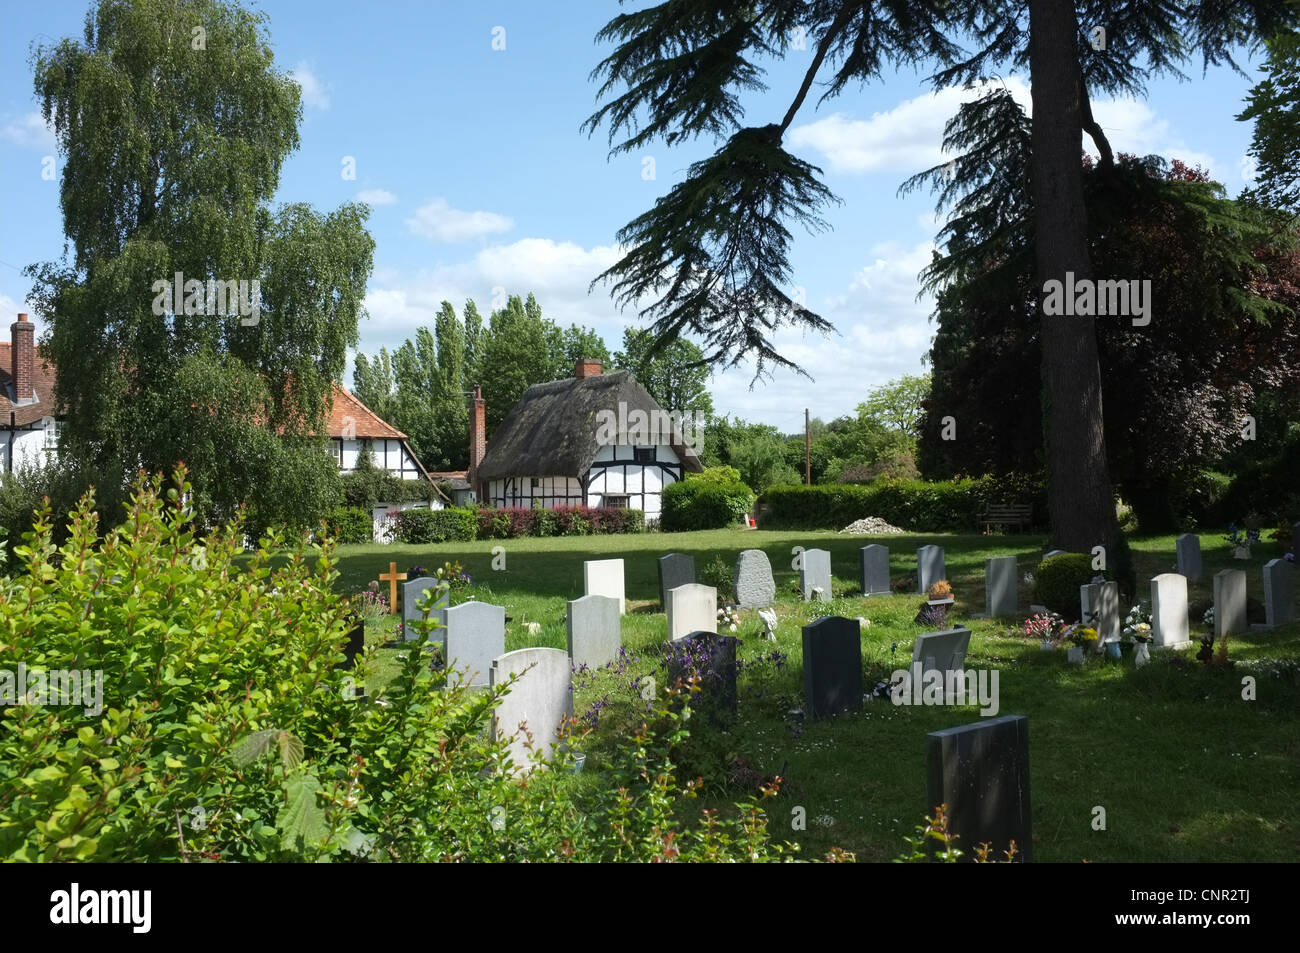 Churchyard and Thatched Cottage in East Hendred, Oxfordshire - Stock Image